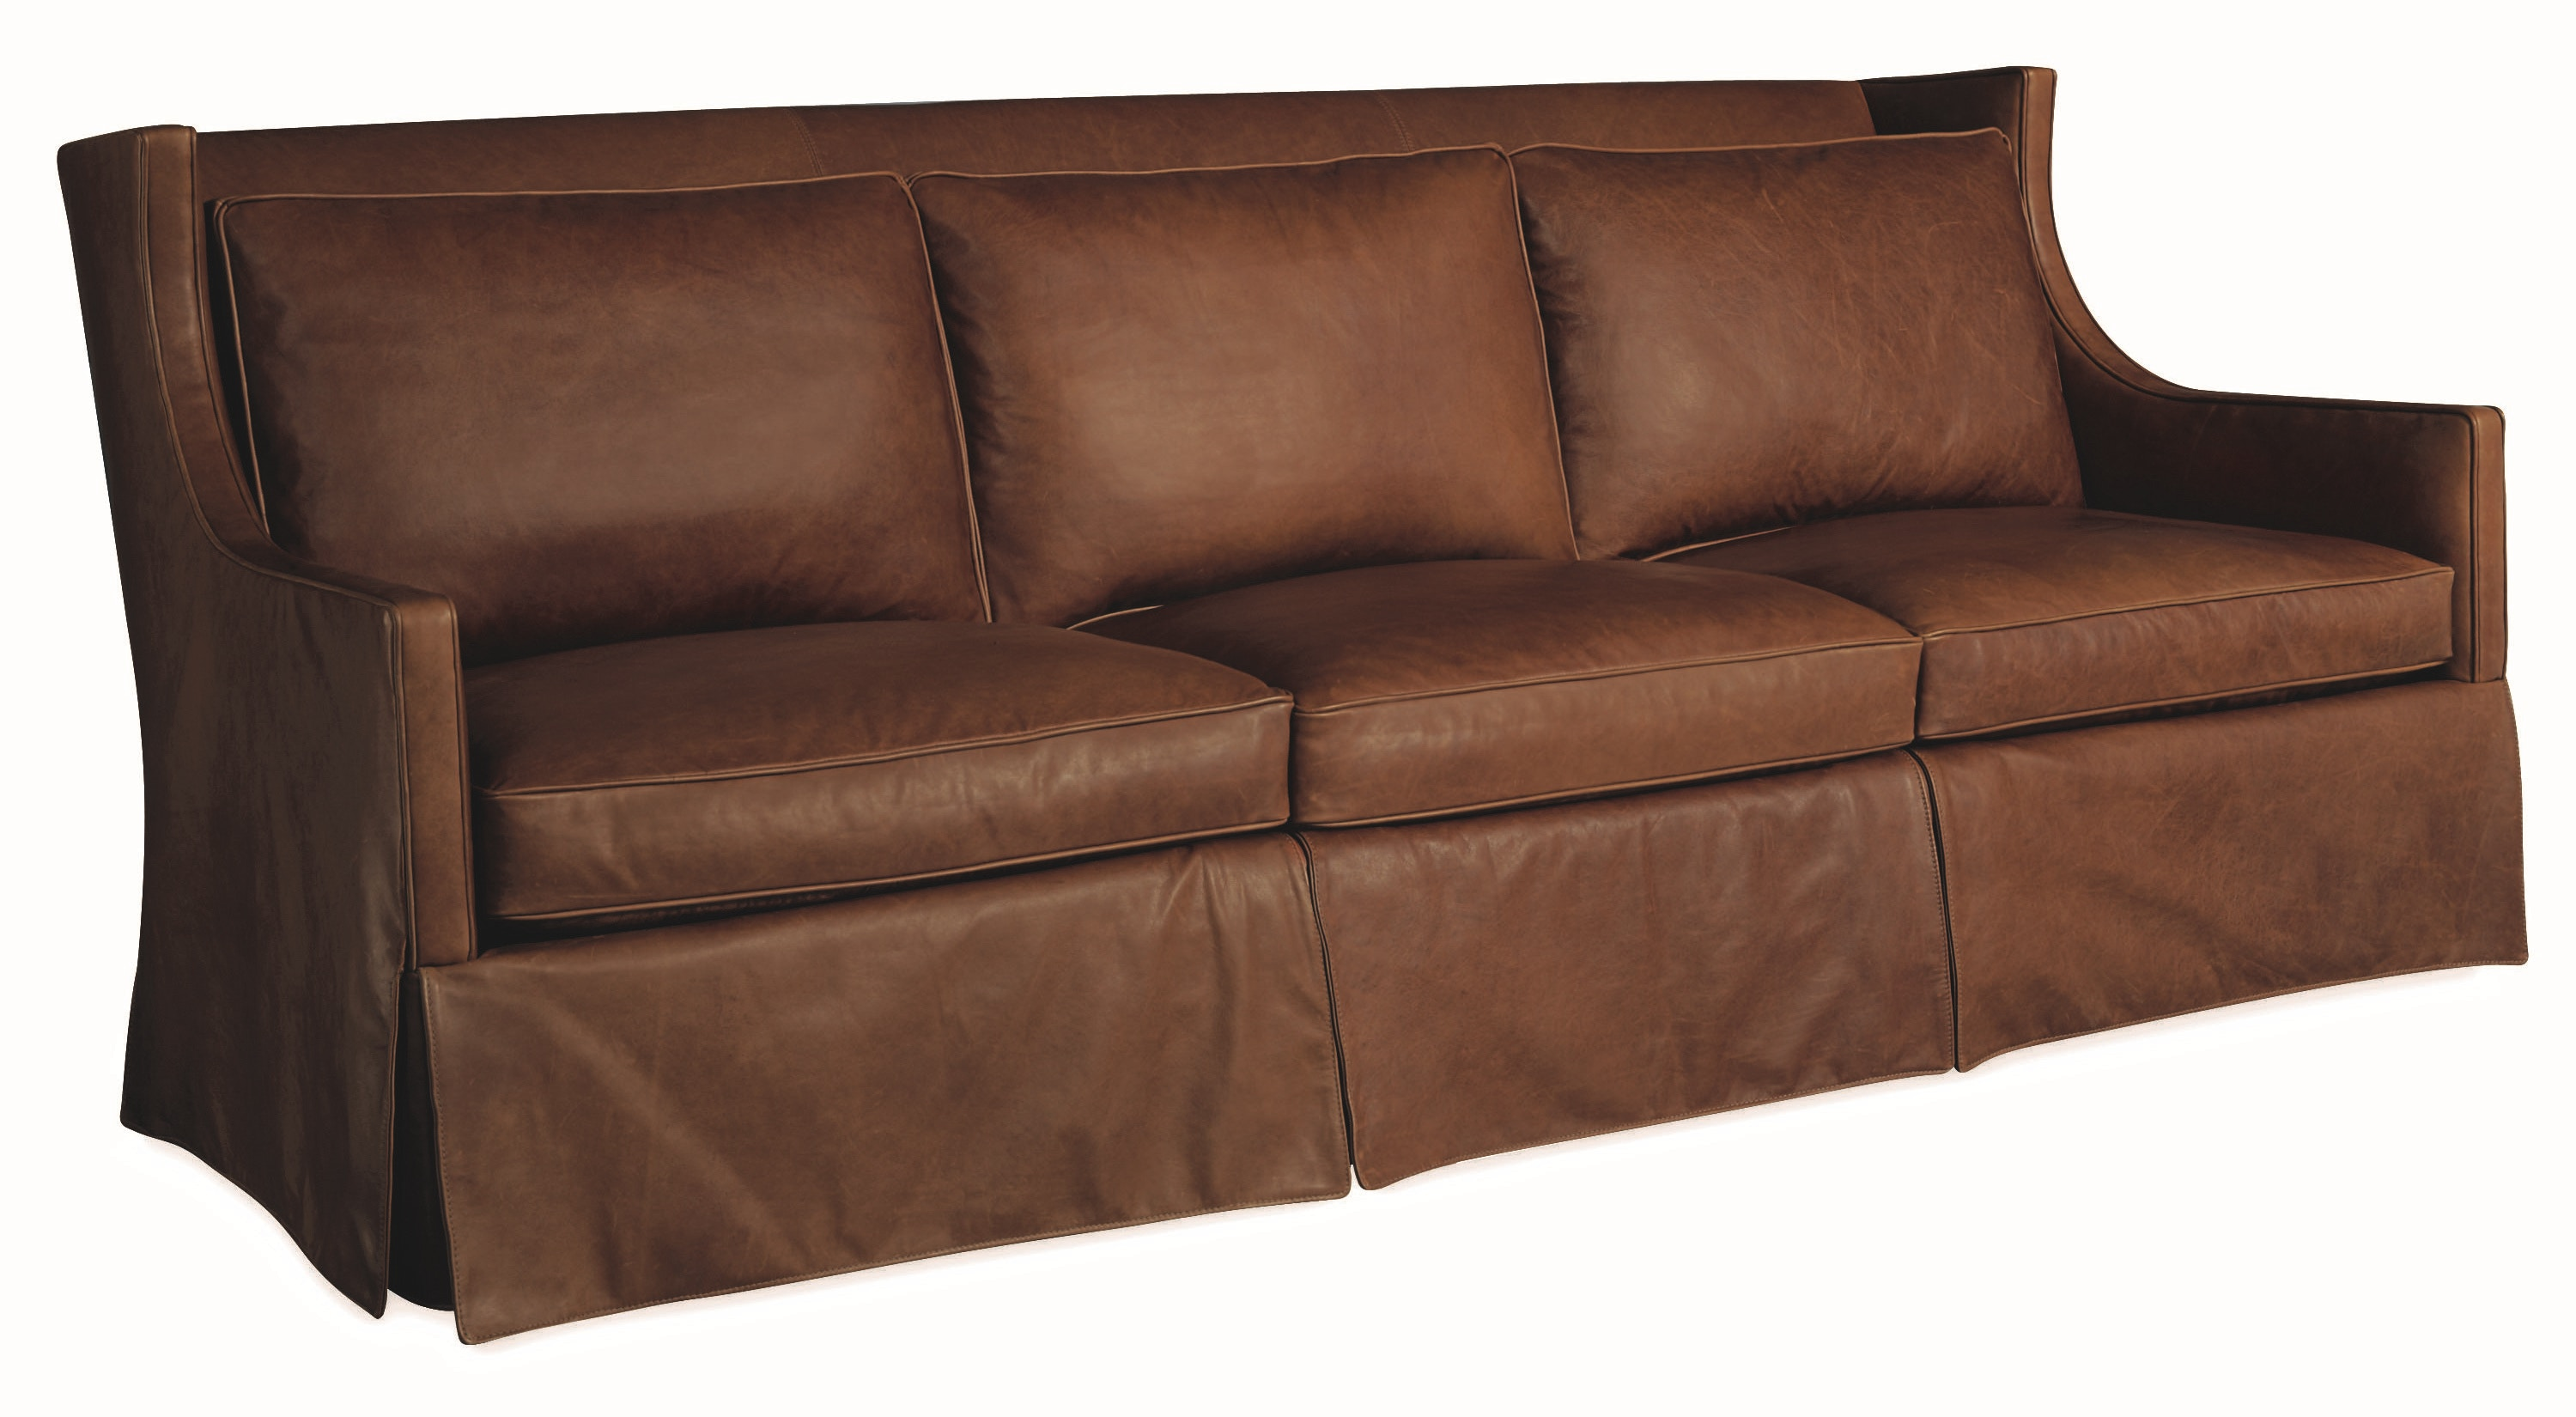 Lee Industries Leather Sofa L1011 03